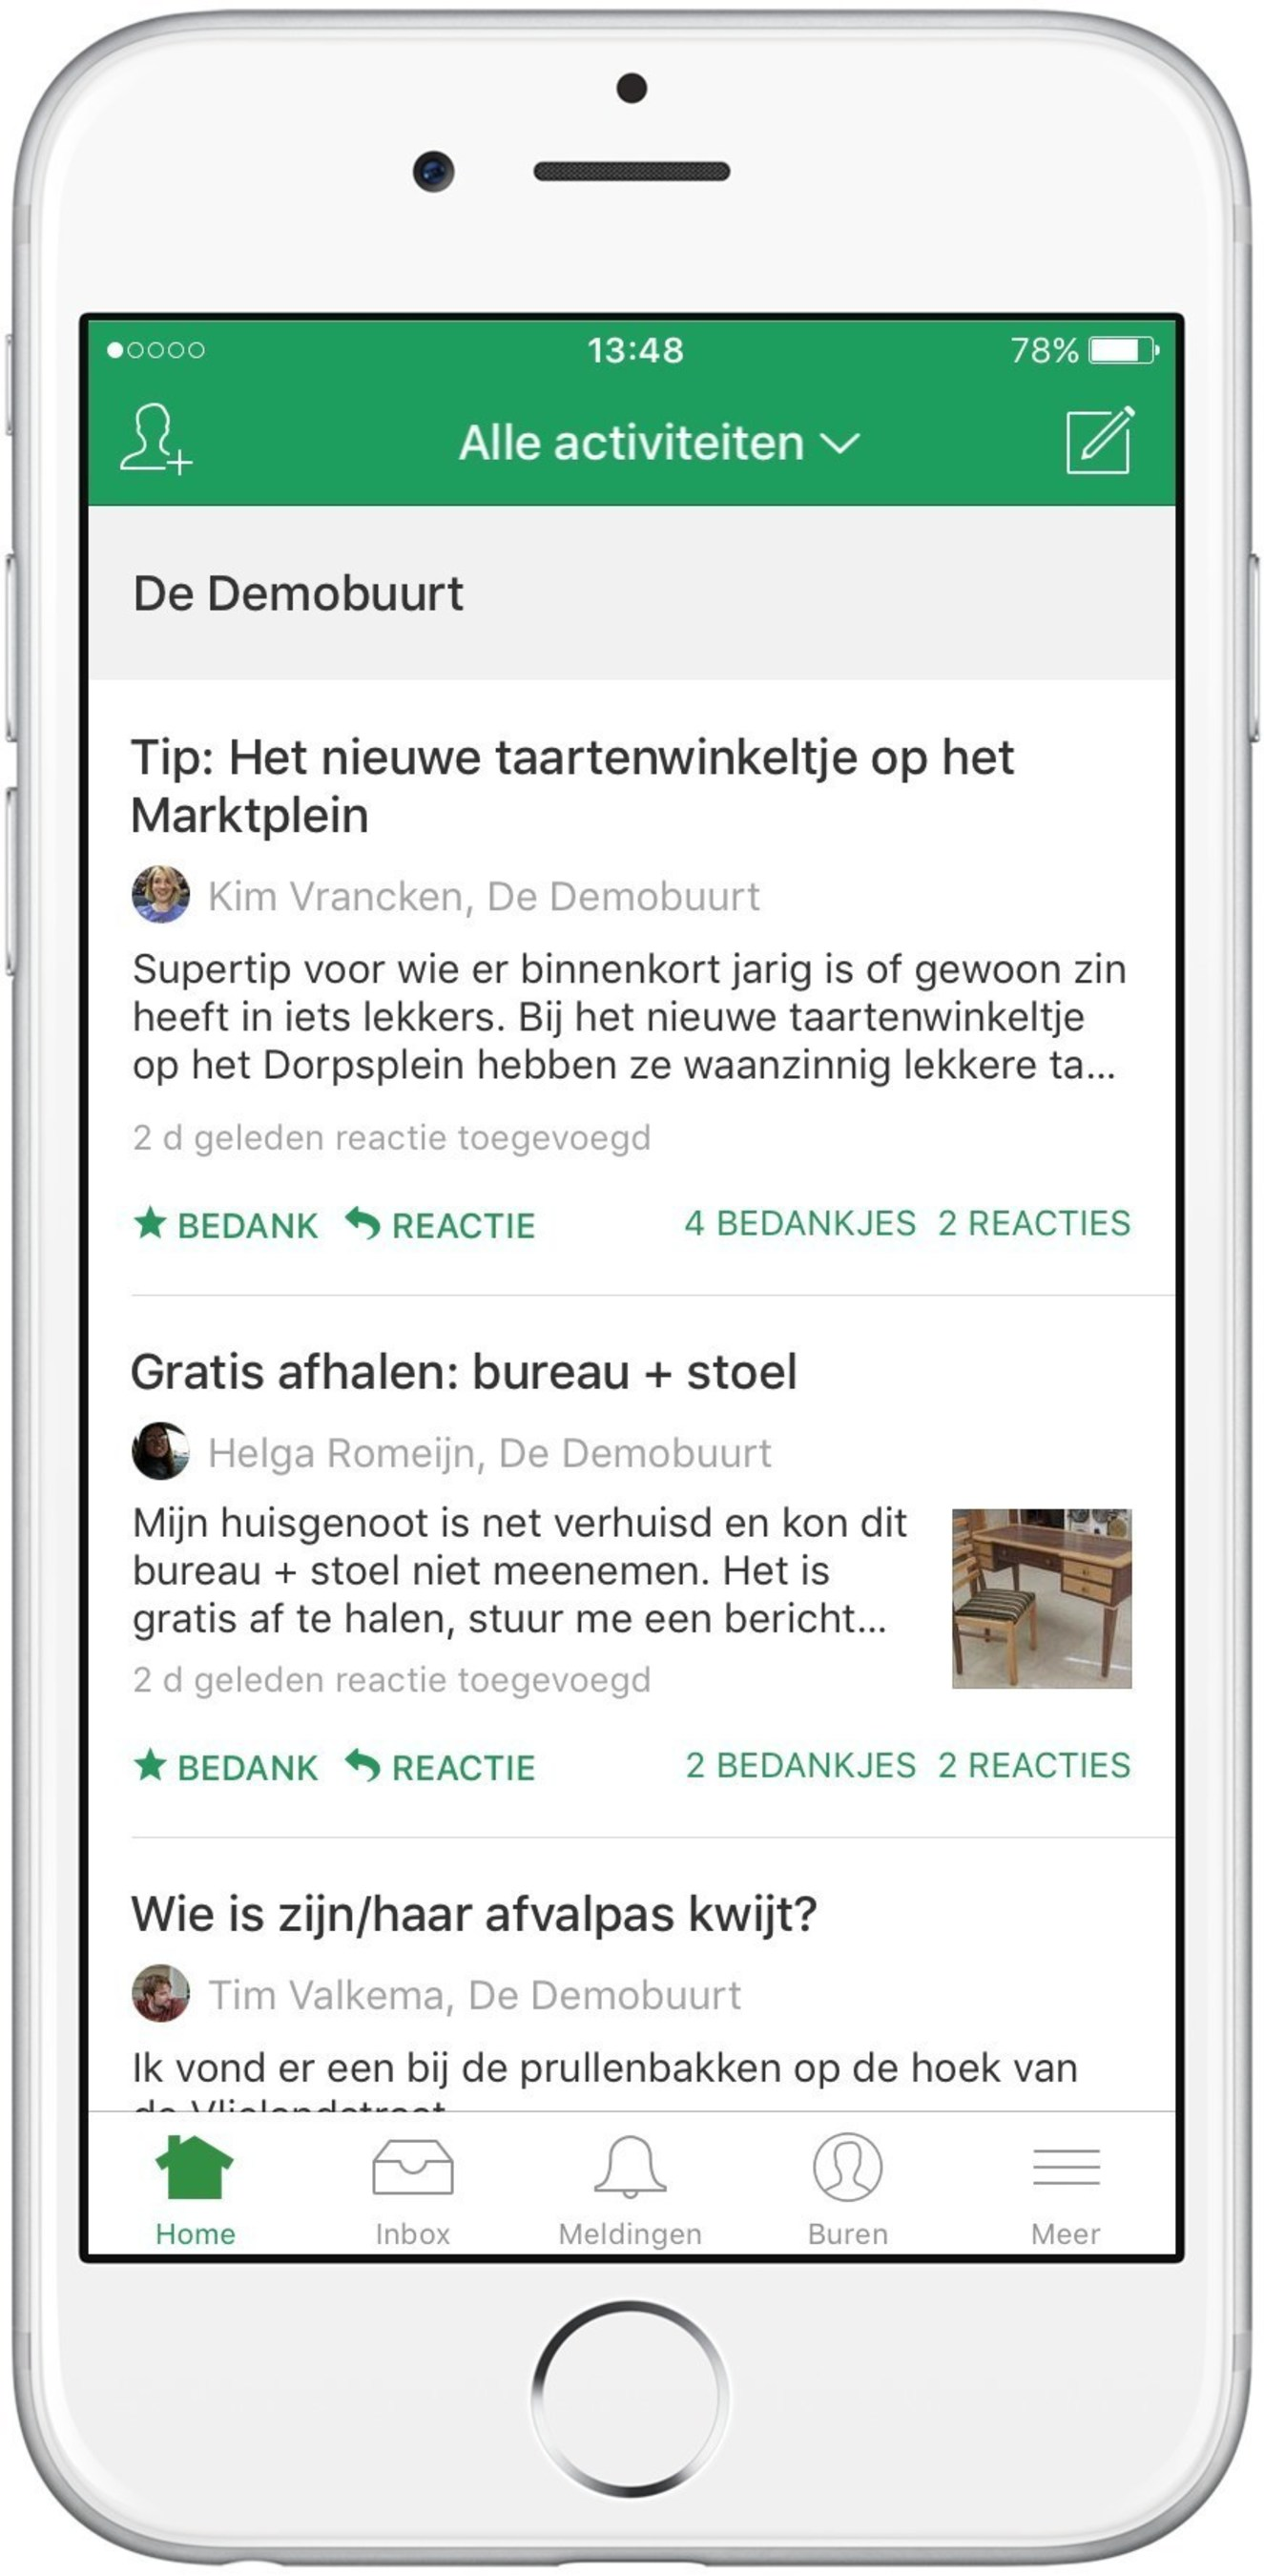 Nextdoor startet seine internationale Expansion in den Niederlanden